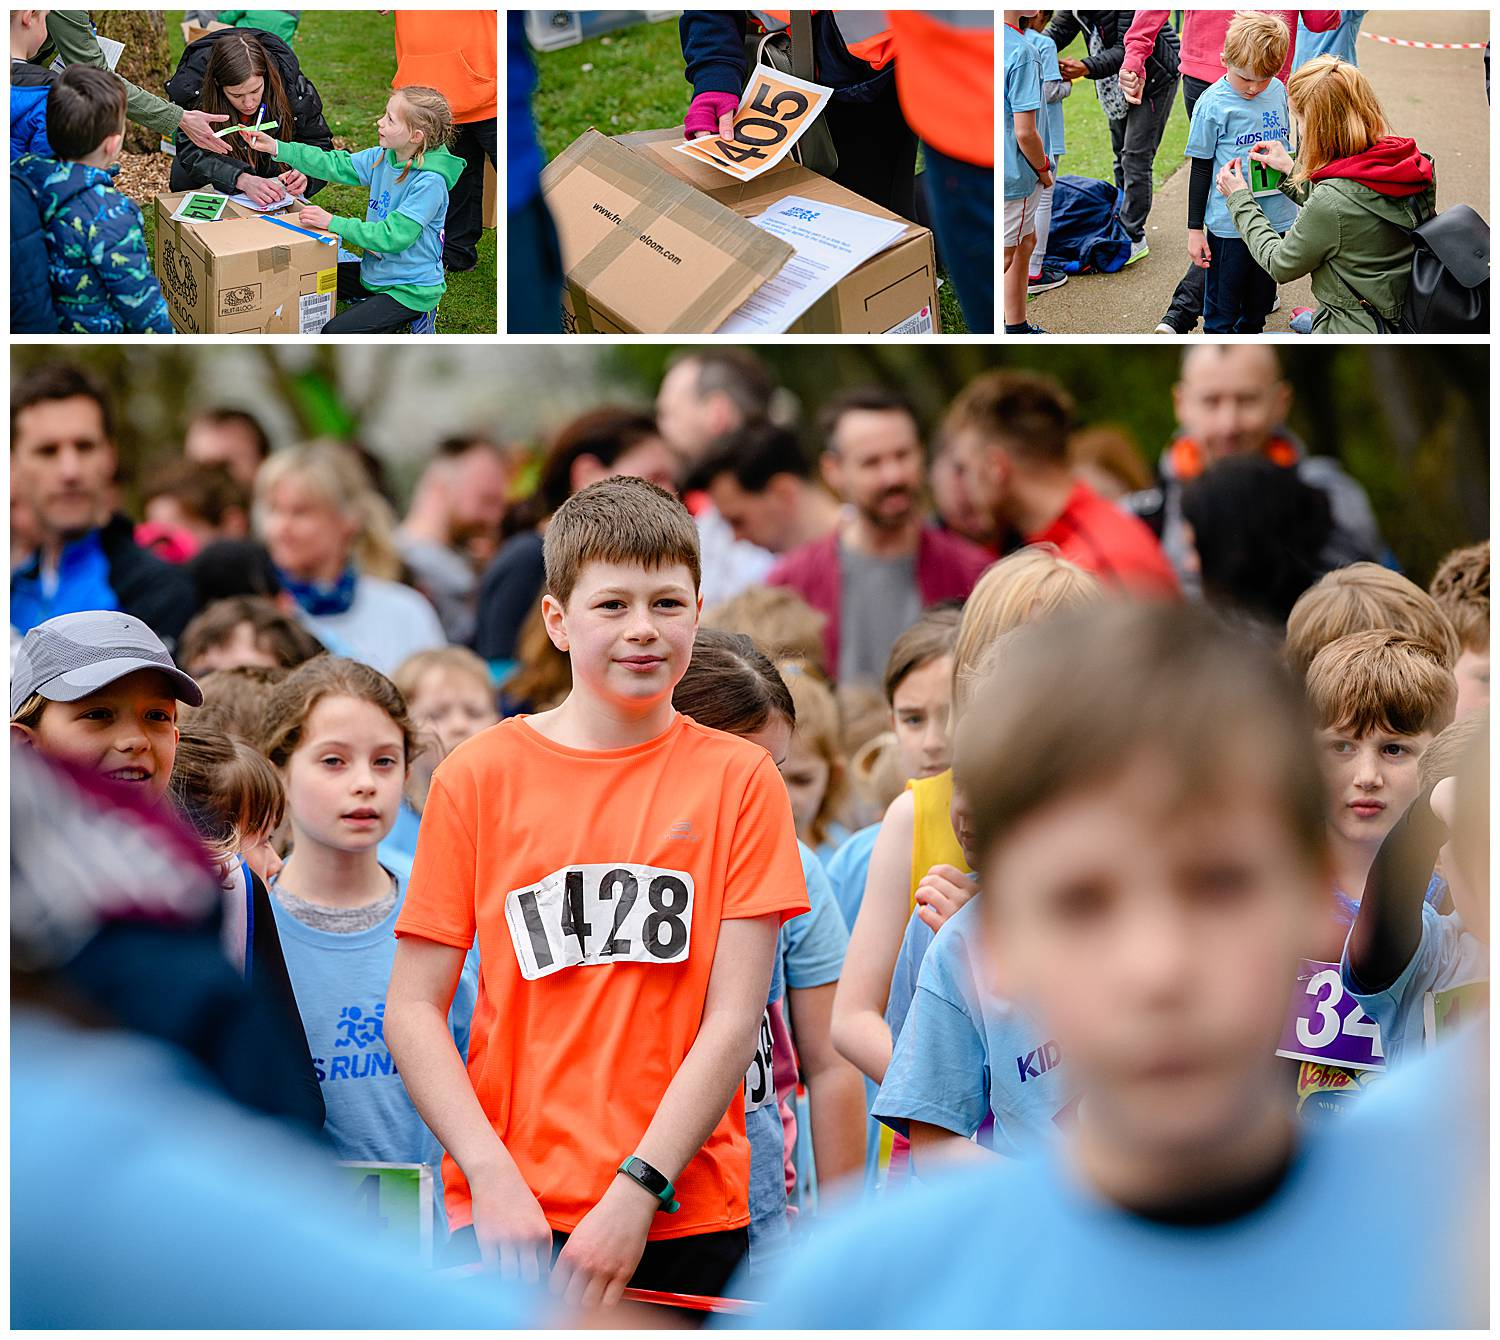 Montage of images of children preparing for a fun run